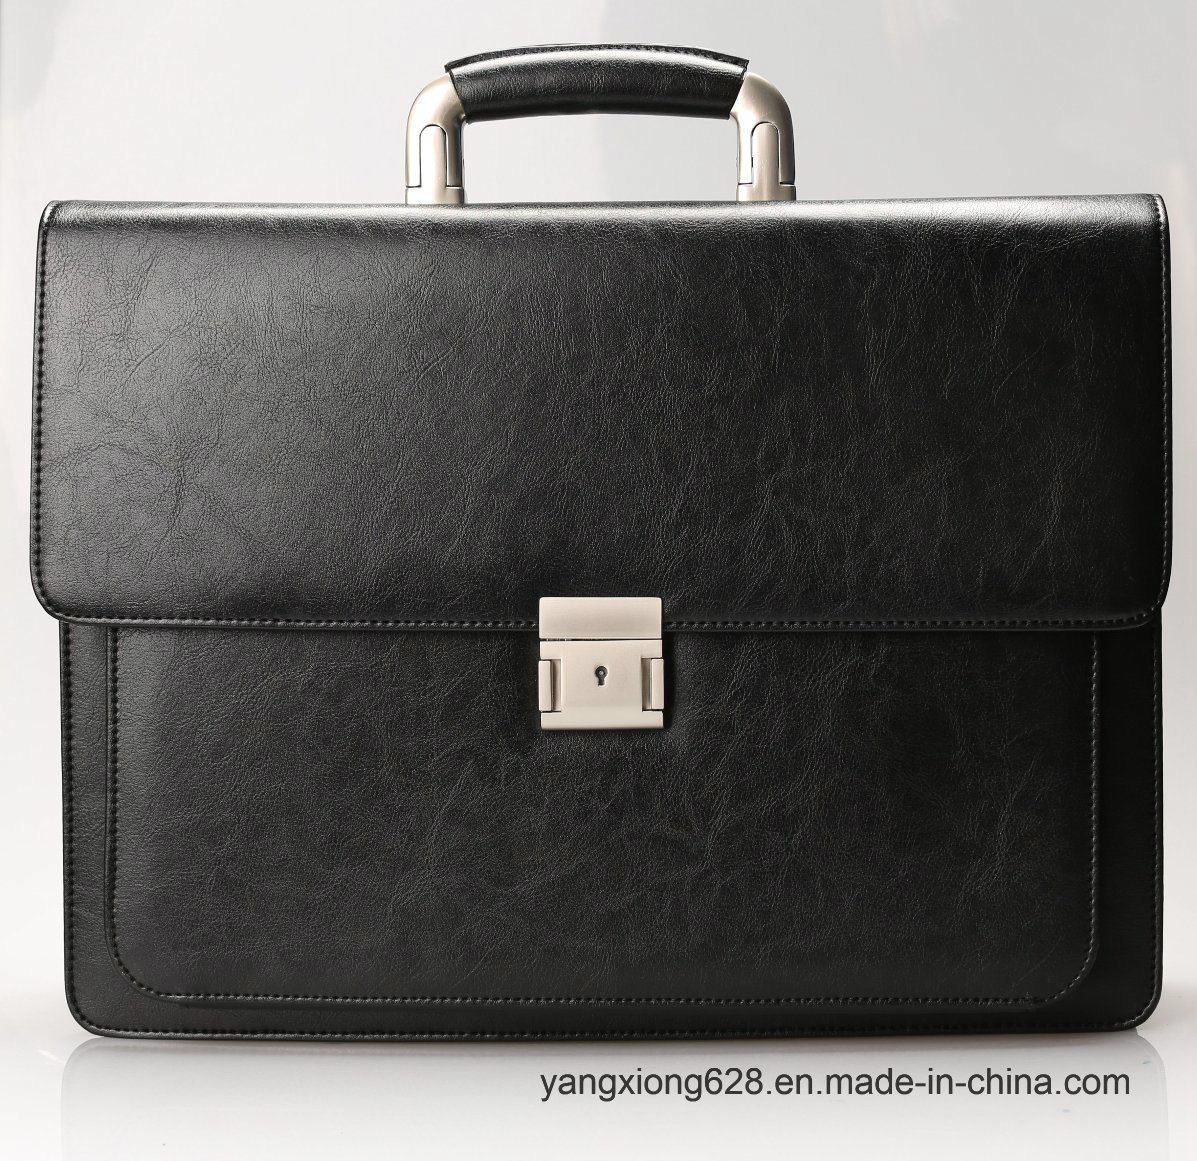 378fc9f53d34 Where To Buy Man Bag | Building Materials Bargain Center